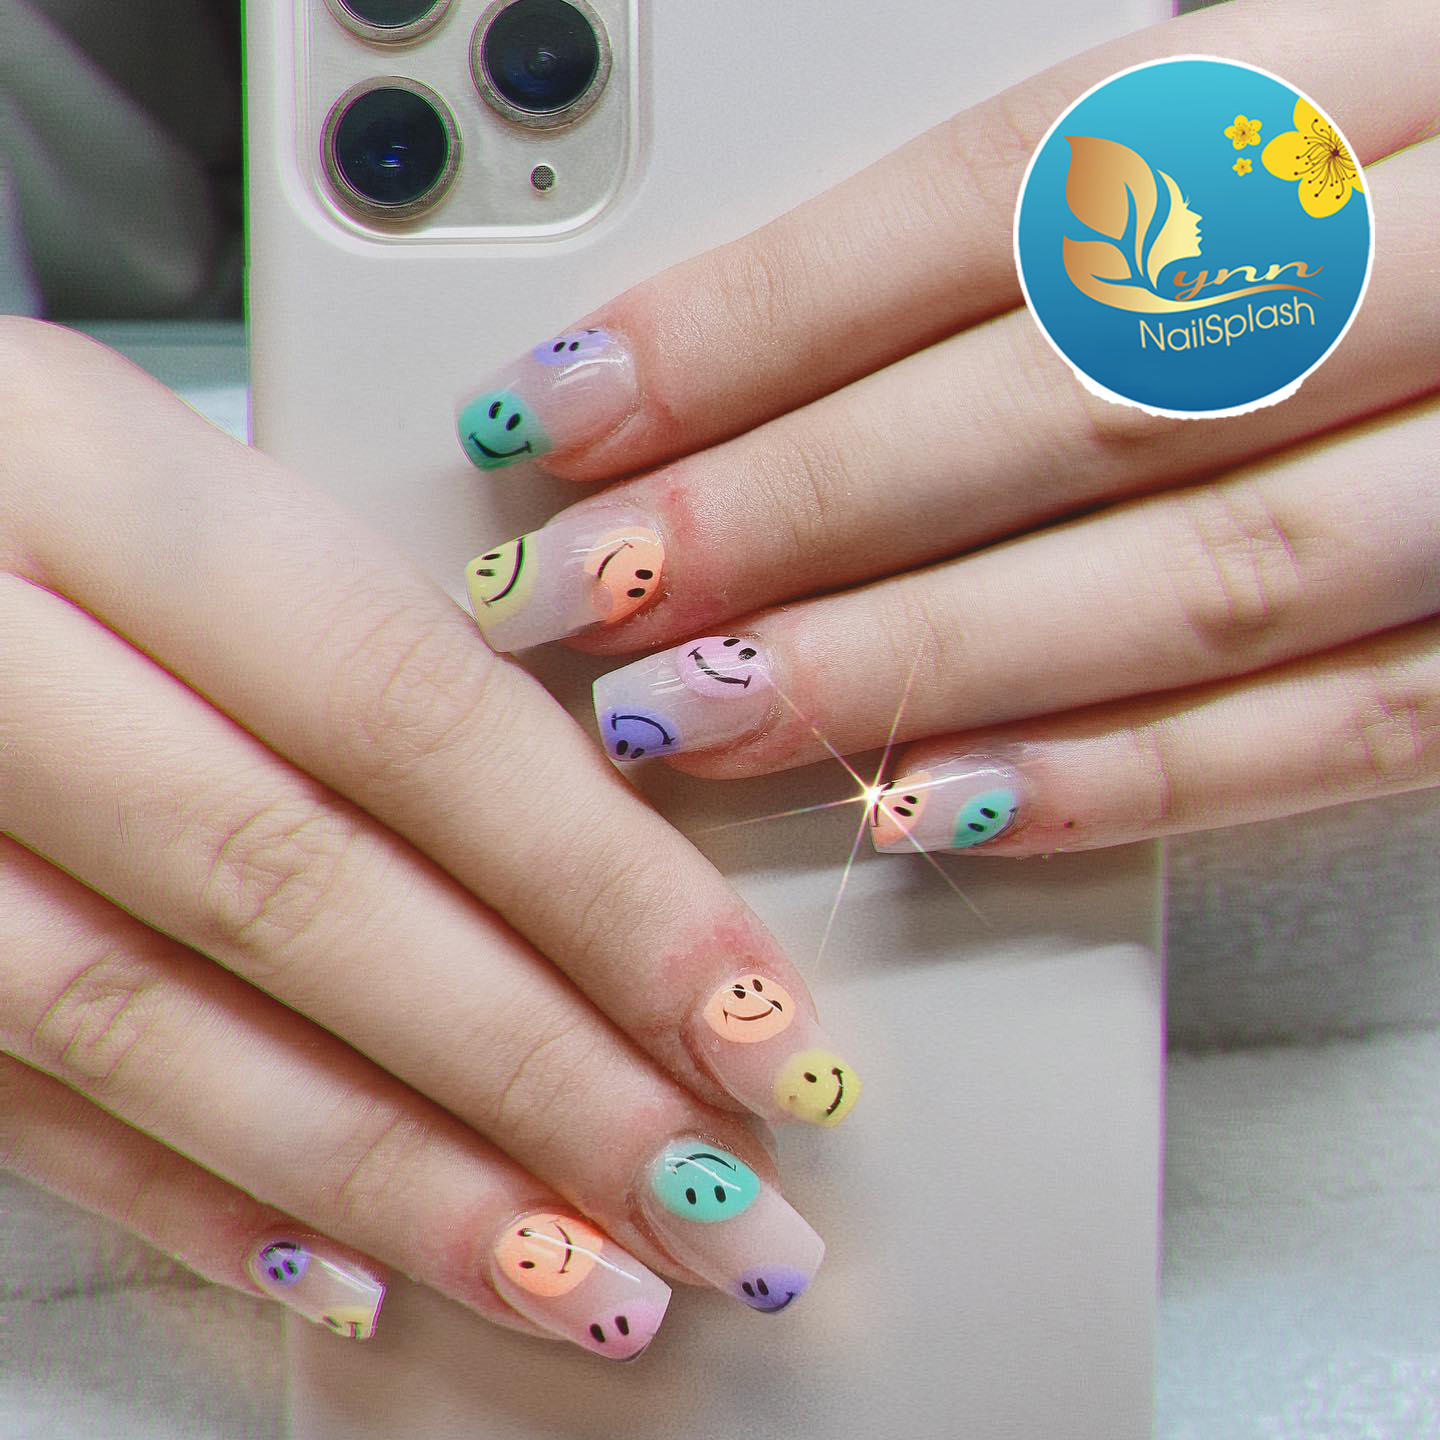 ENJOY YOUR PAMPERING TIME IN OUR NAIL SALON IN North Vancouver